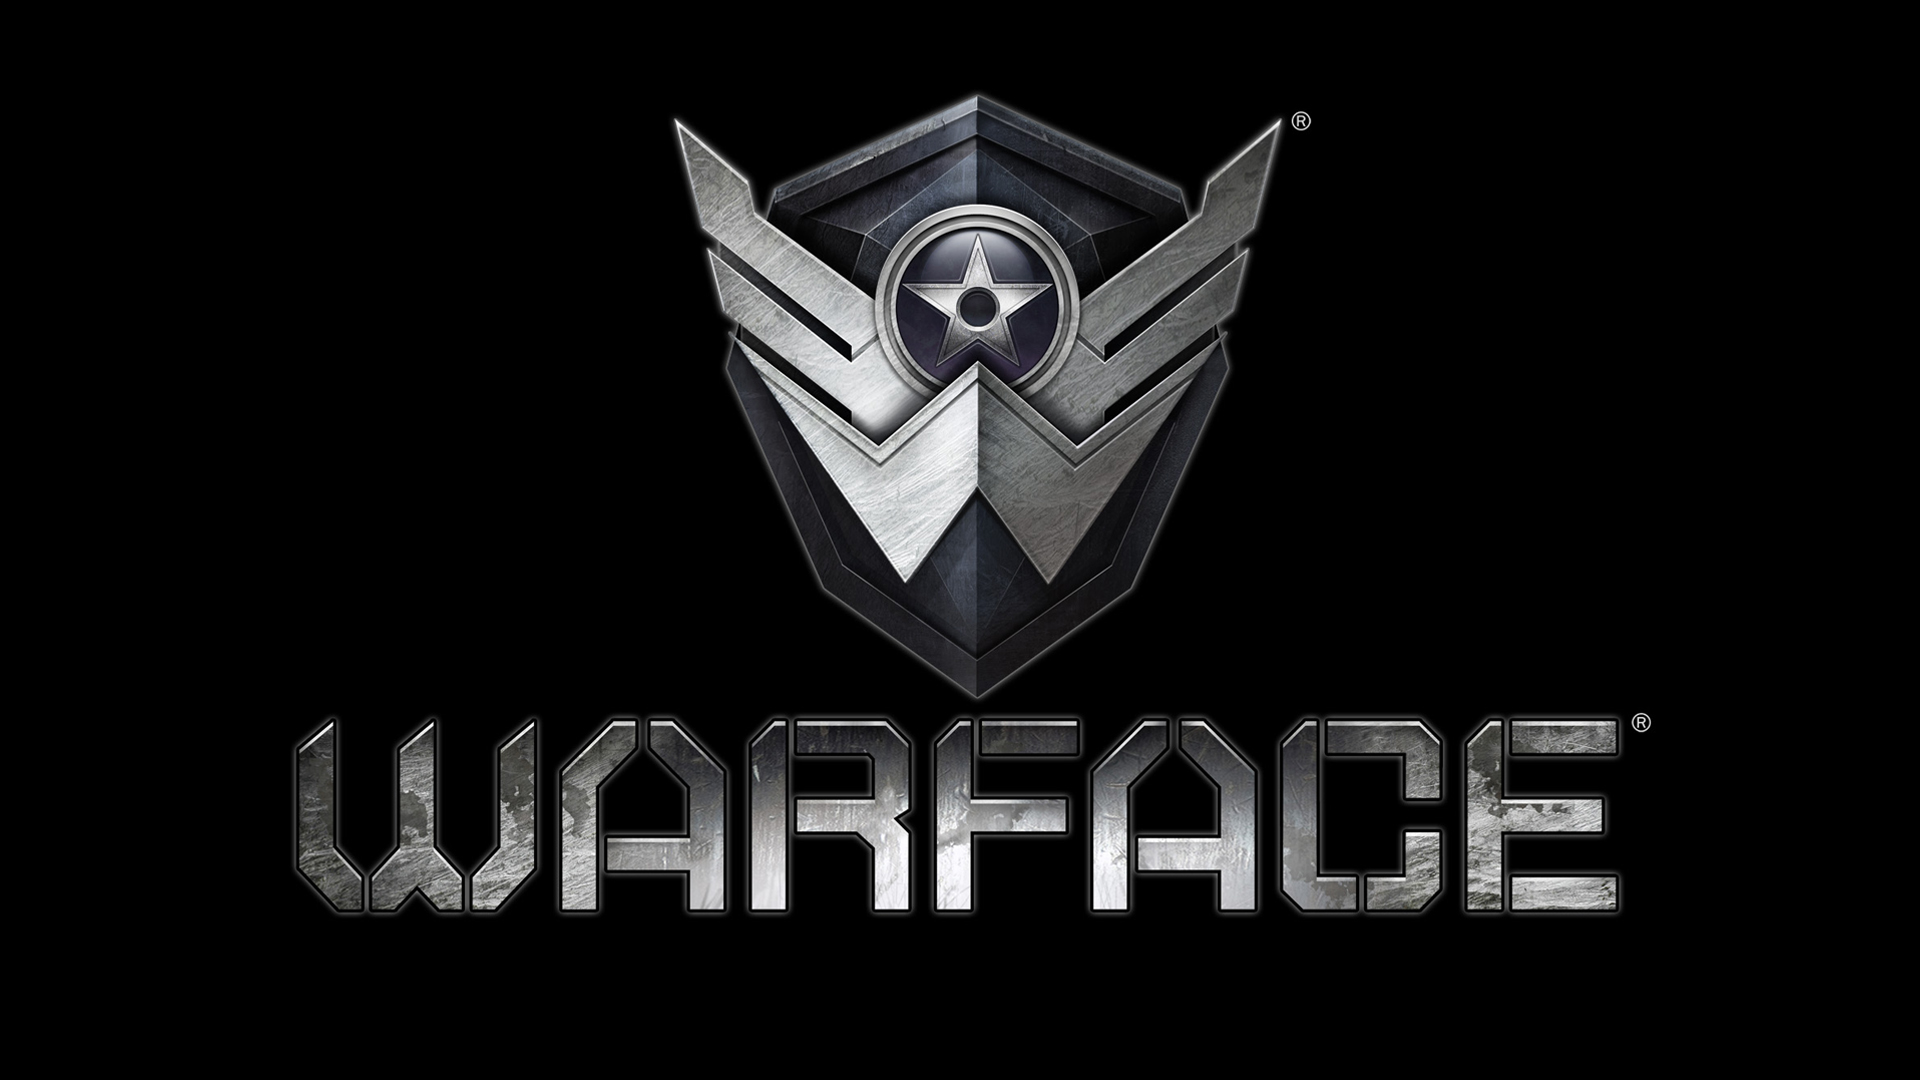 19 Warface HD Wallpapers | Hintergründe - Wallpaper Abyss: http://wall.alphacoders.com/by_sub_category.php?id=178576&lang=German